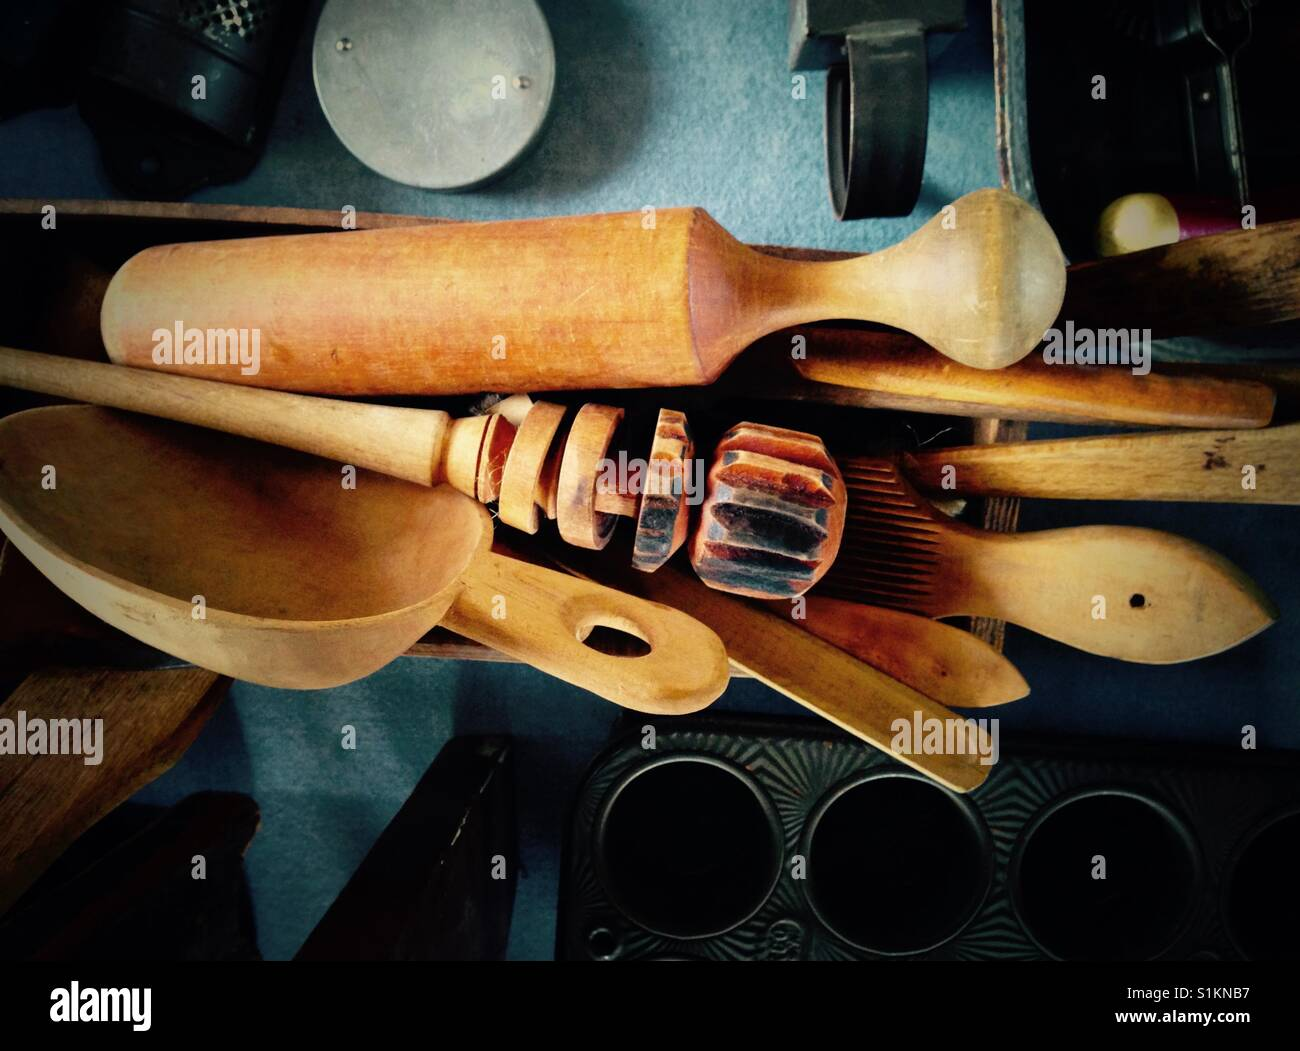 Antique wooden kitchen utensils and spoons. - Stock Image